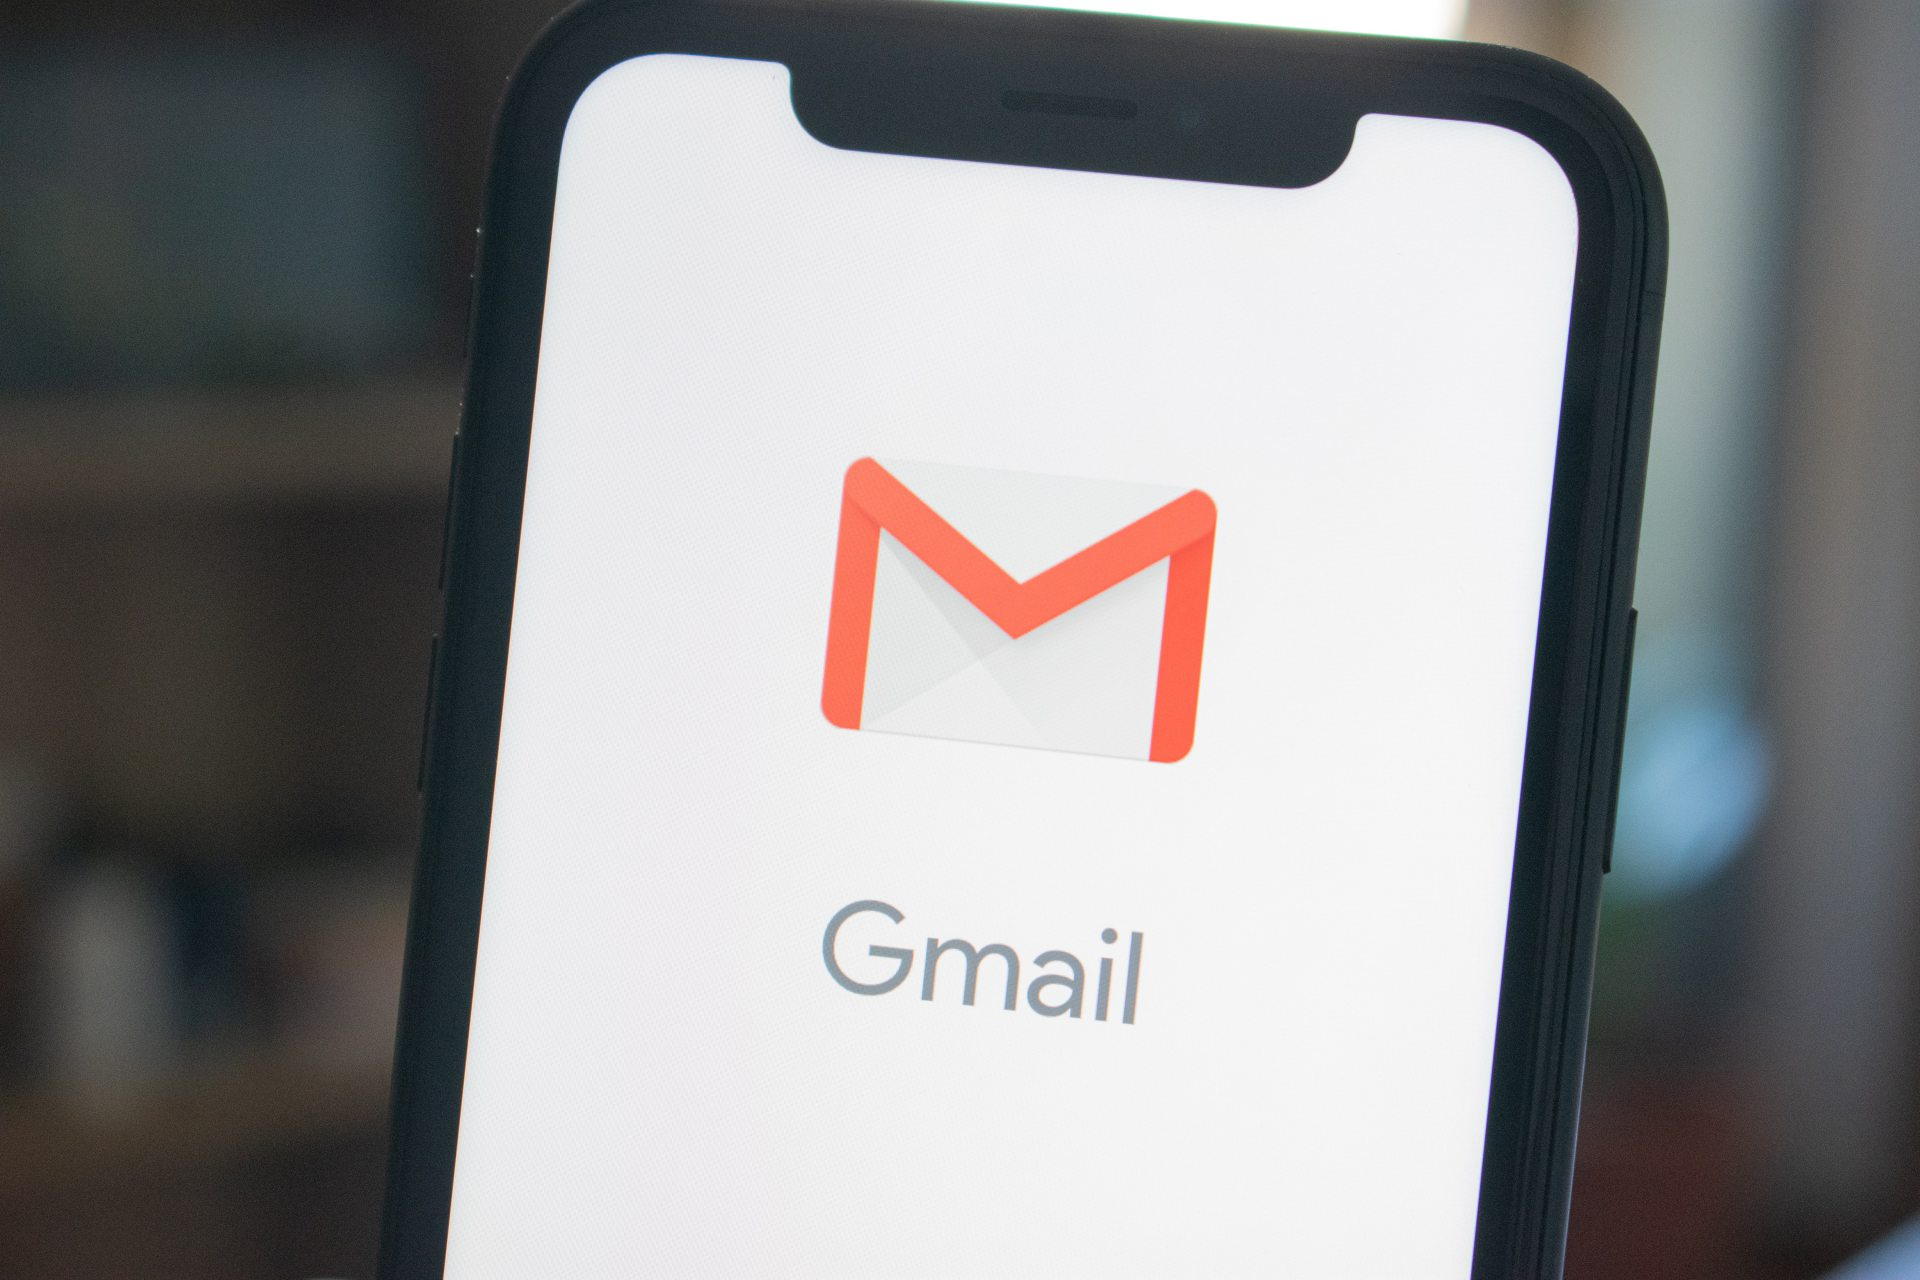 Google Shopping in Gmail